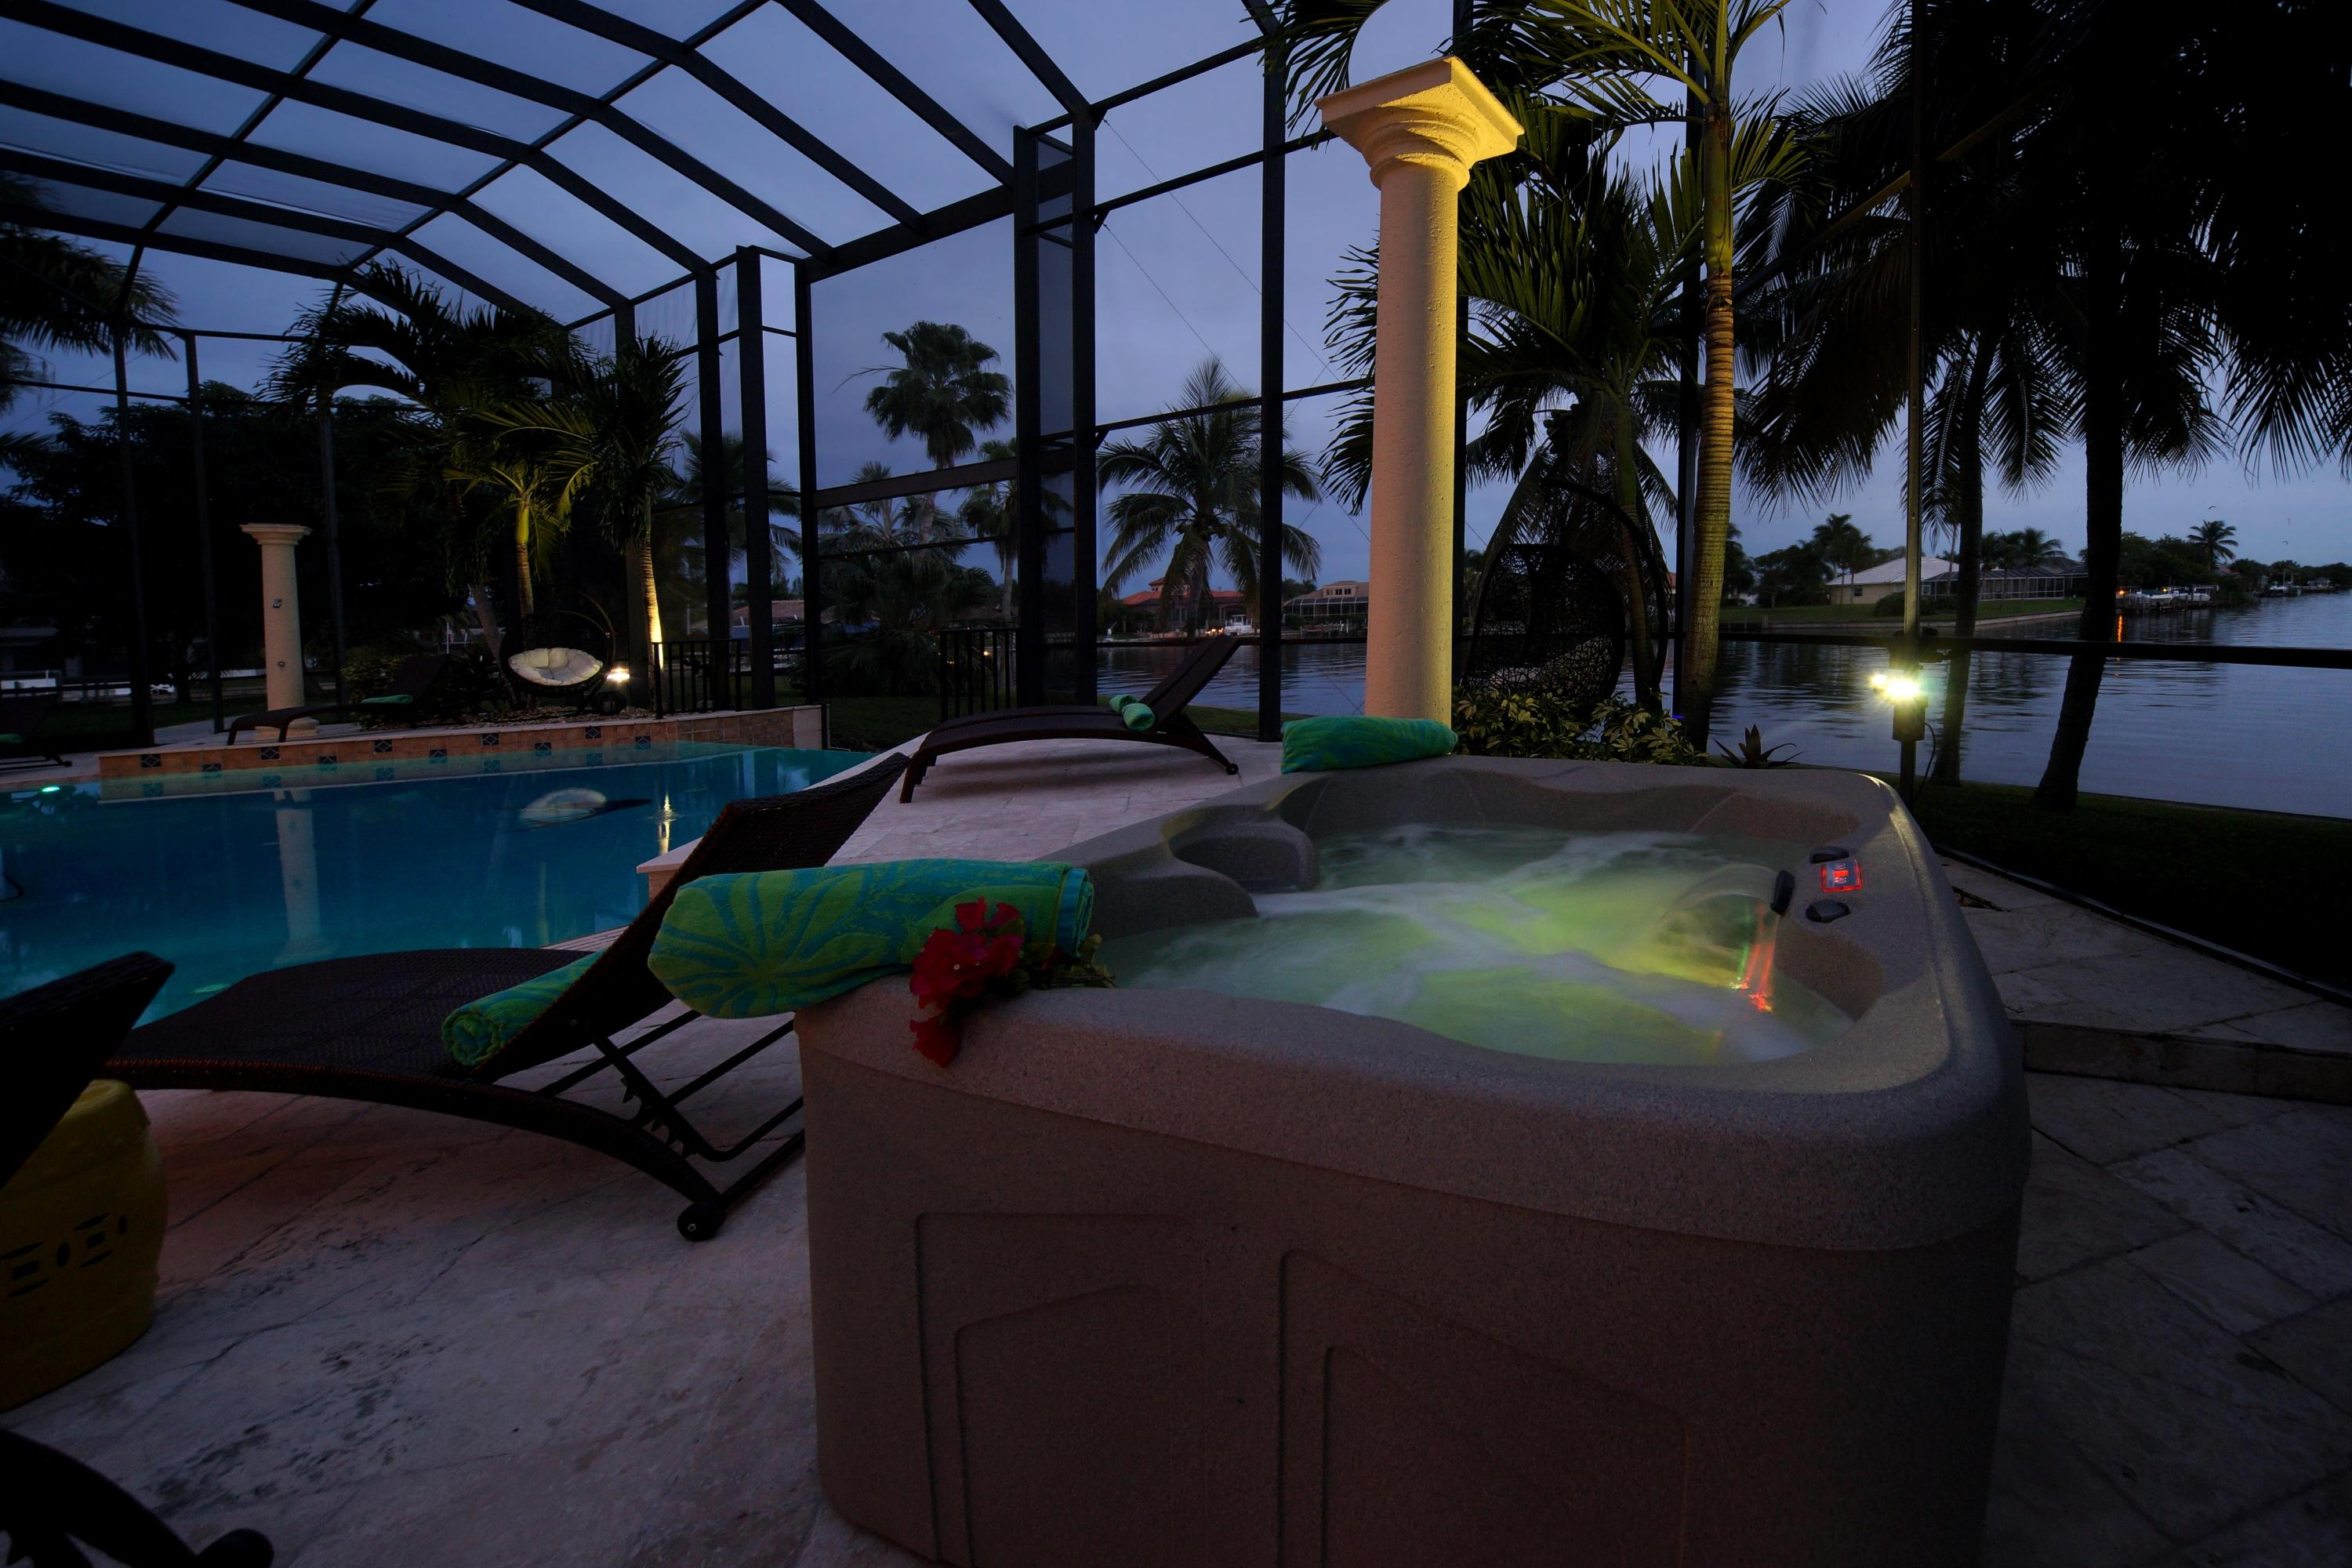 night-pool-spa.jpg